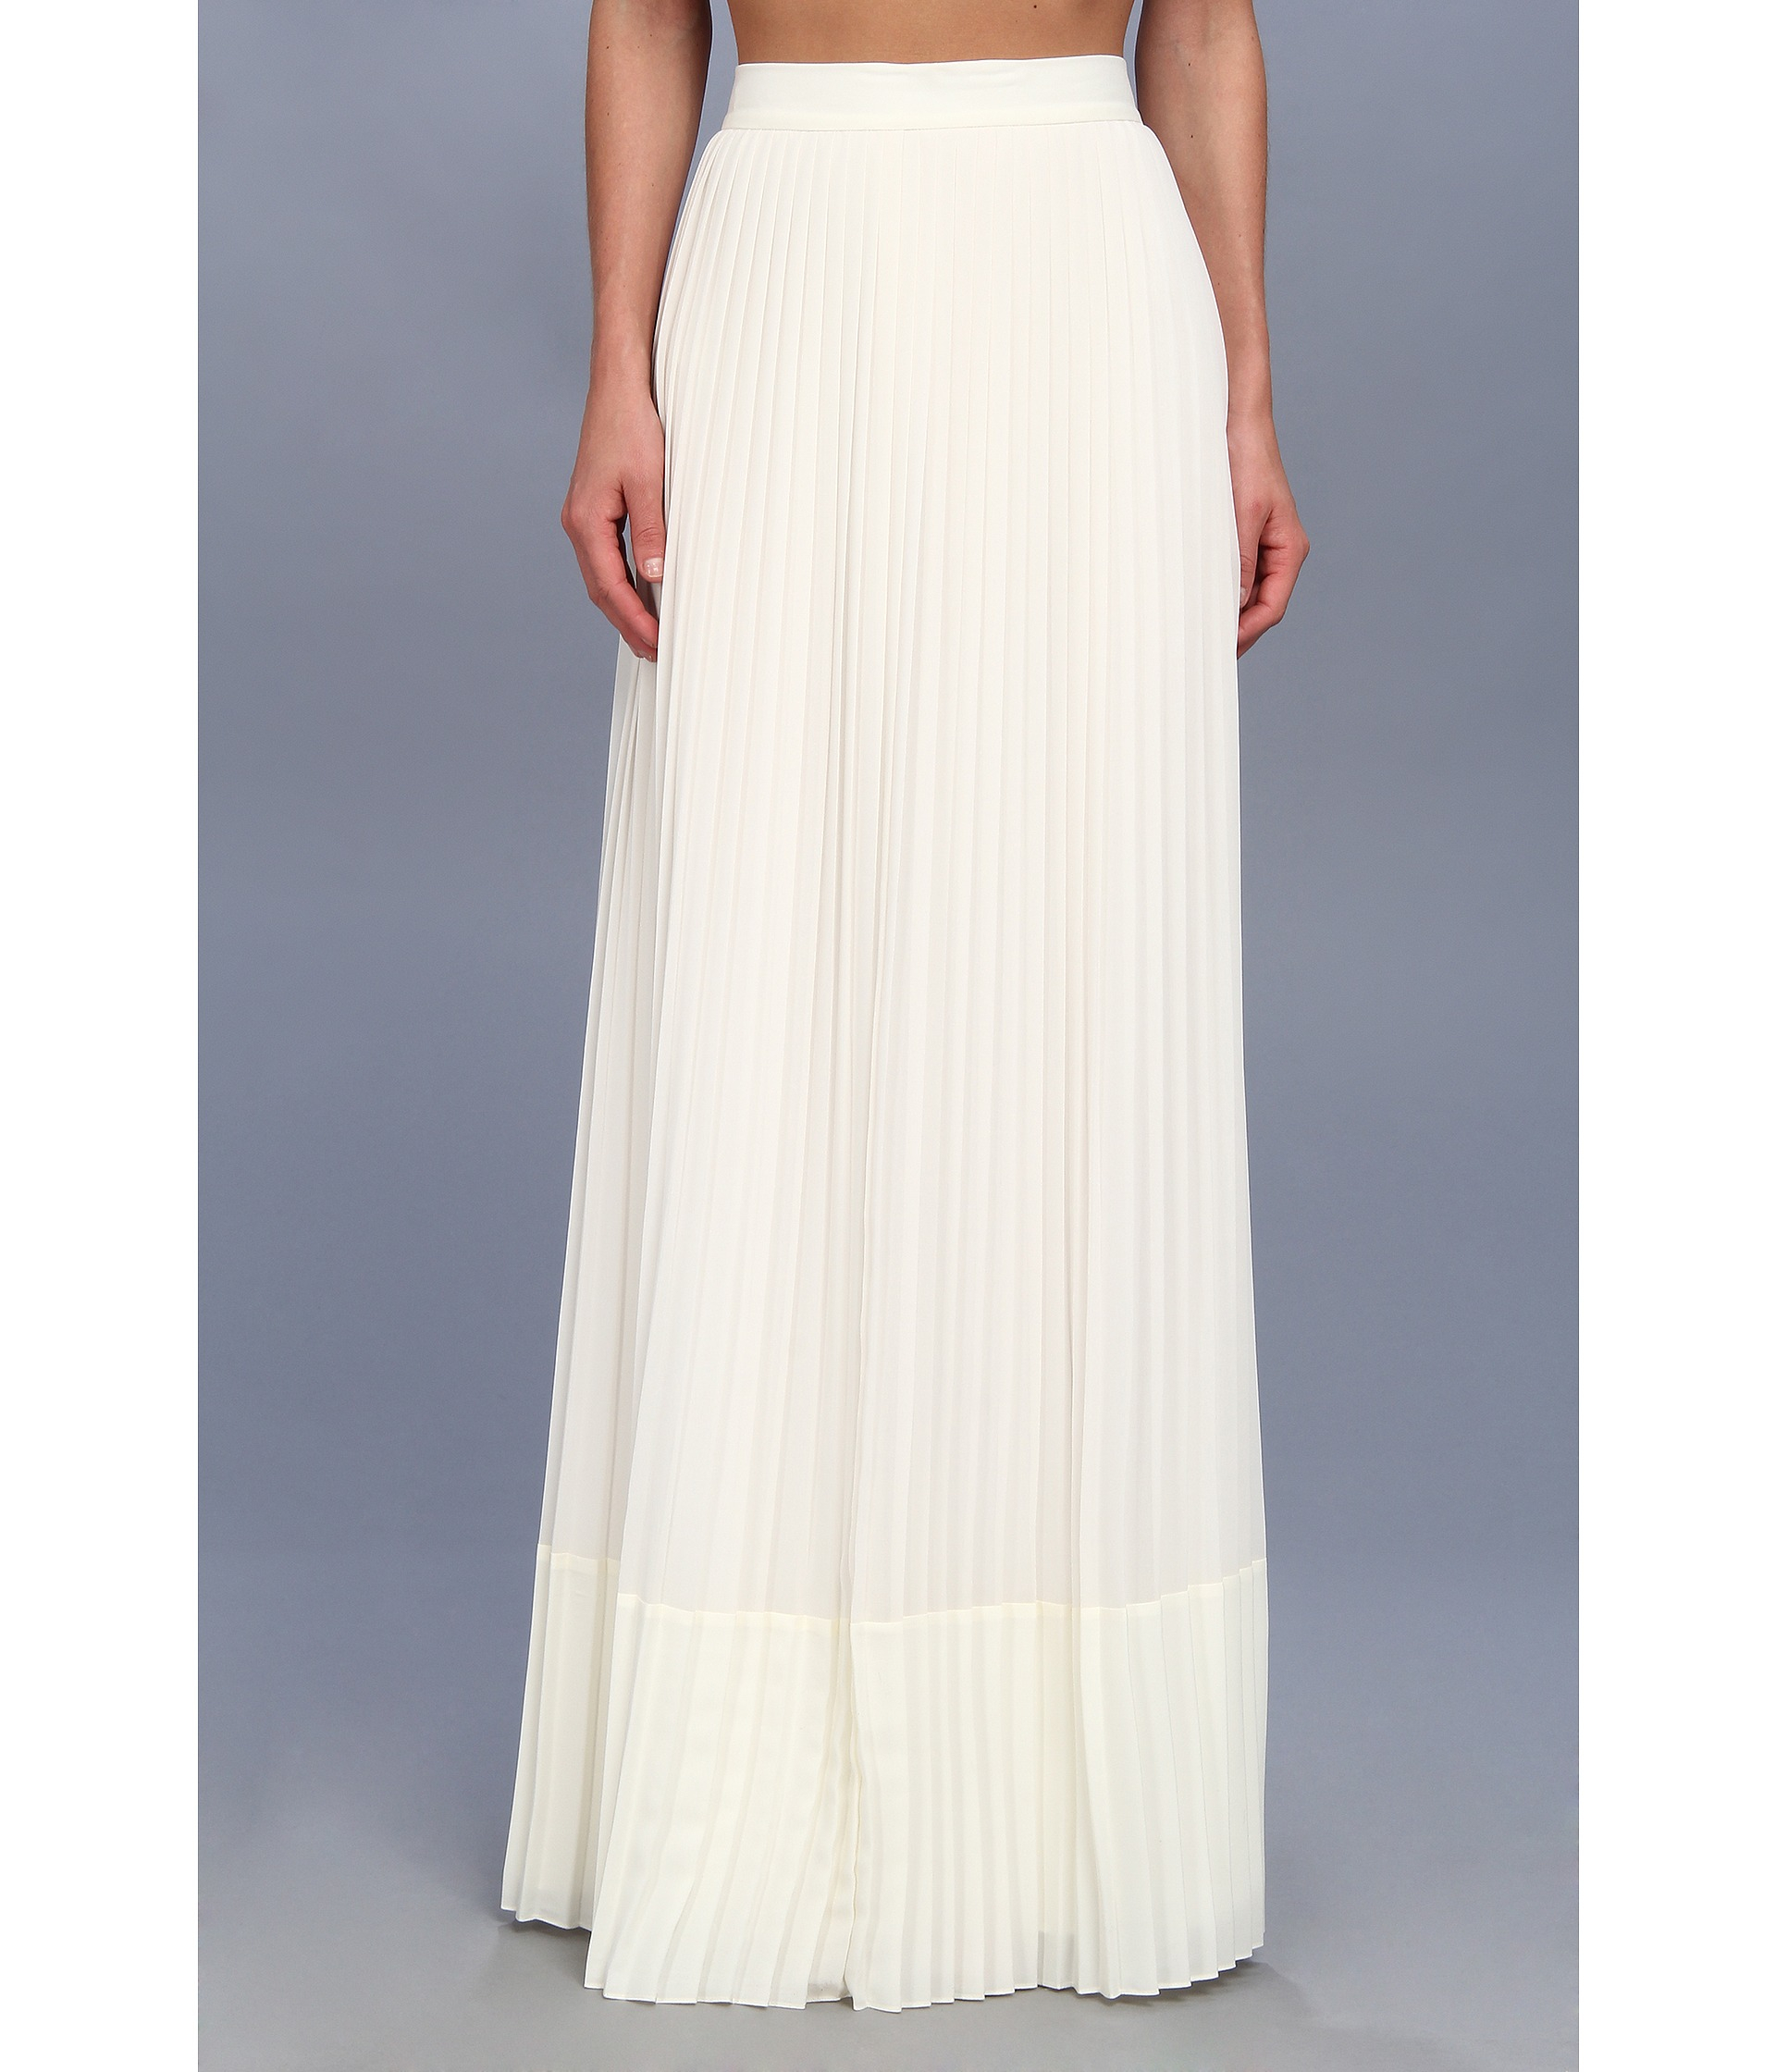 Badgley mischka Pleated Maxi Skirt in White | Lyst